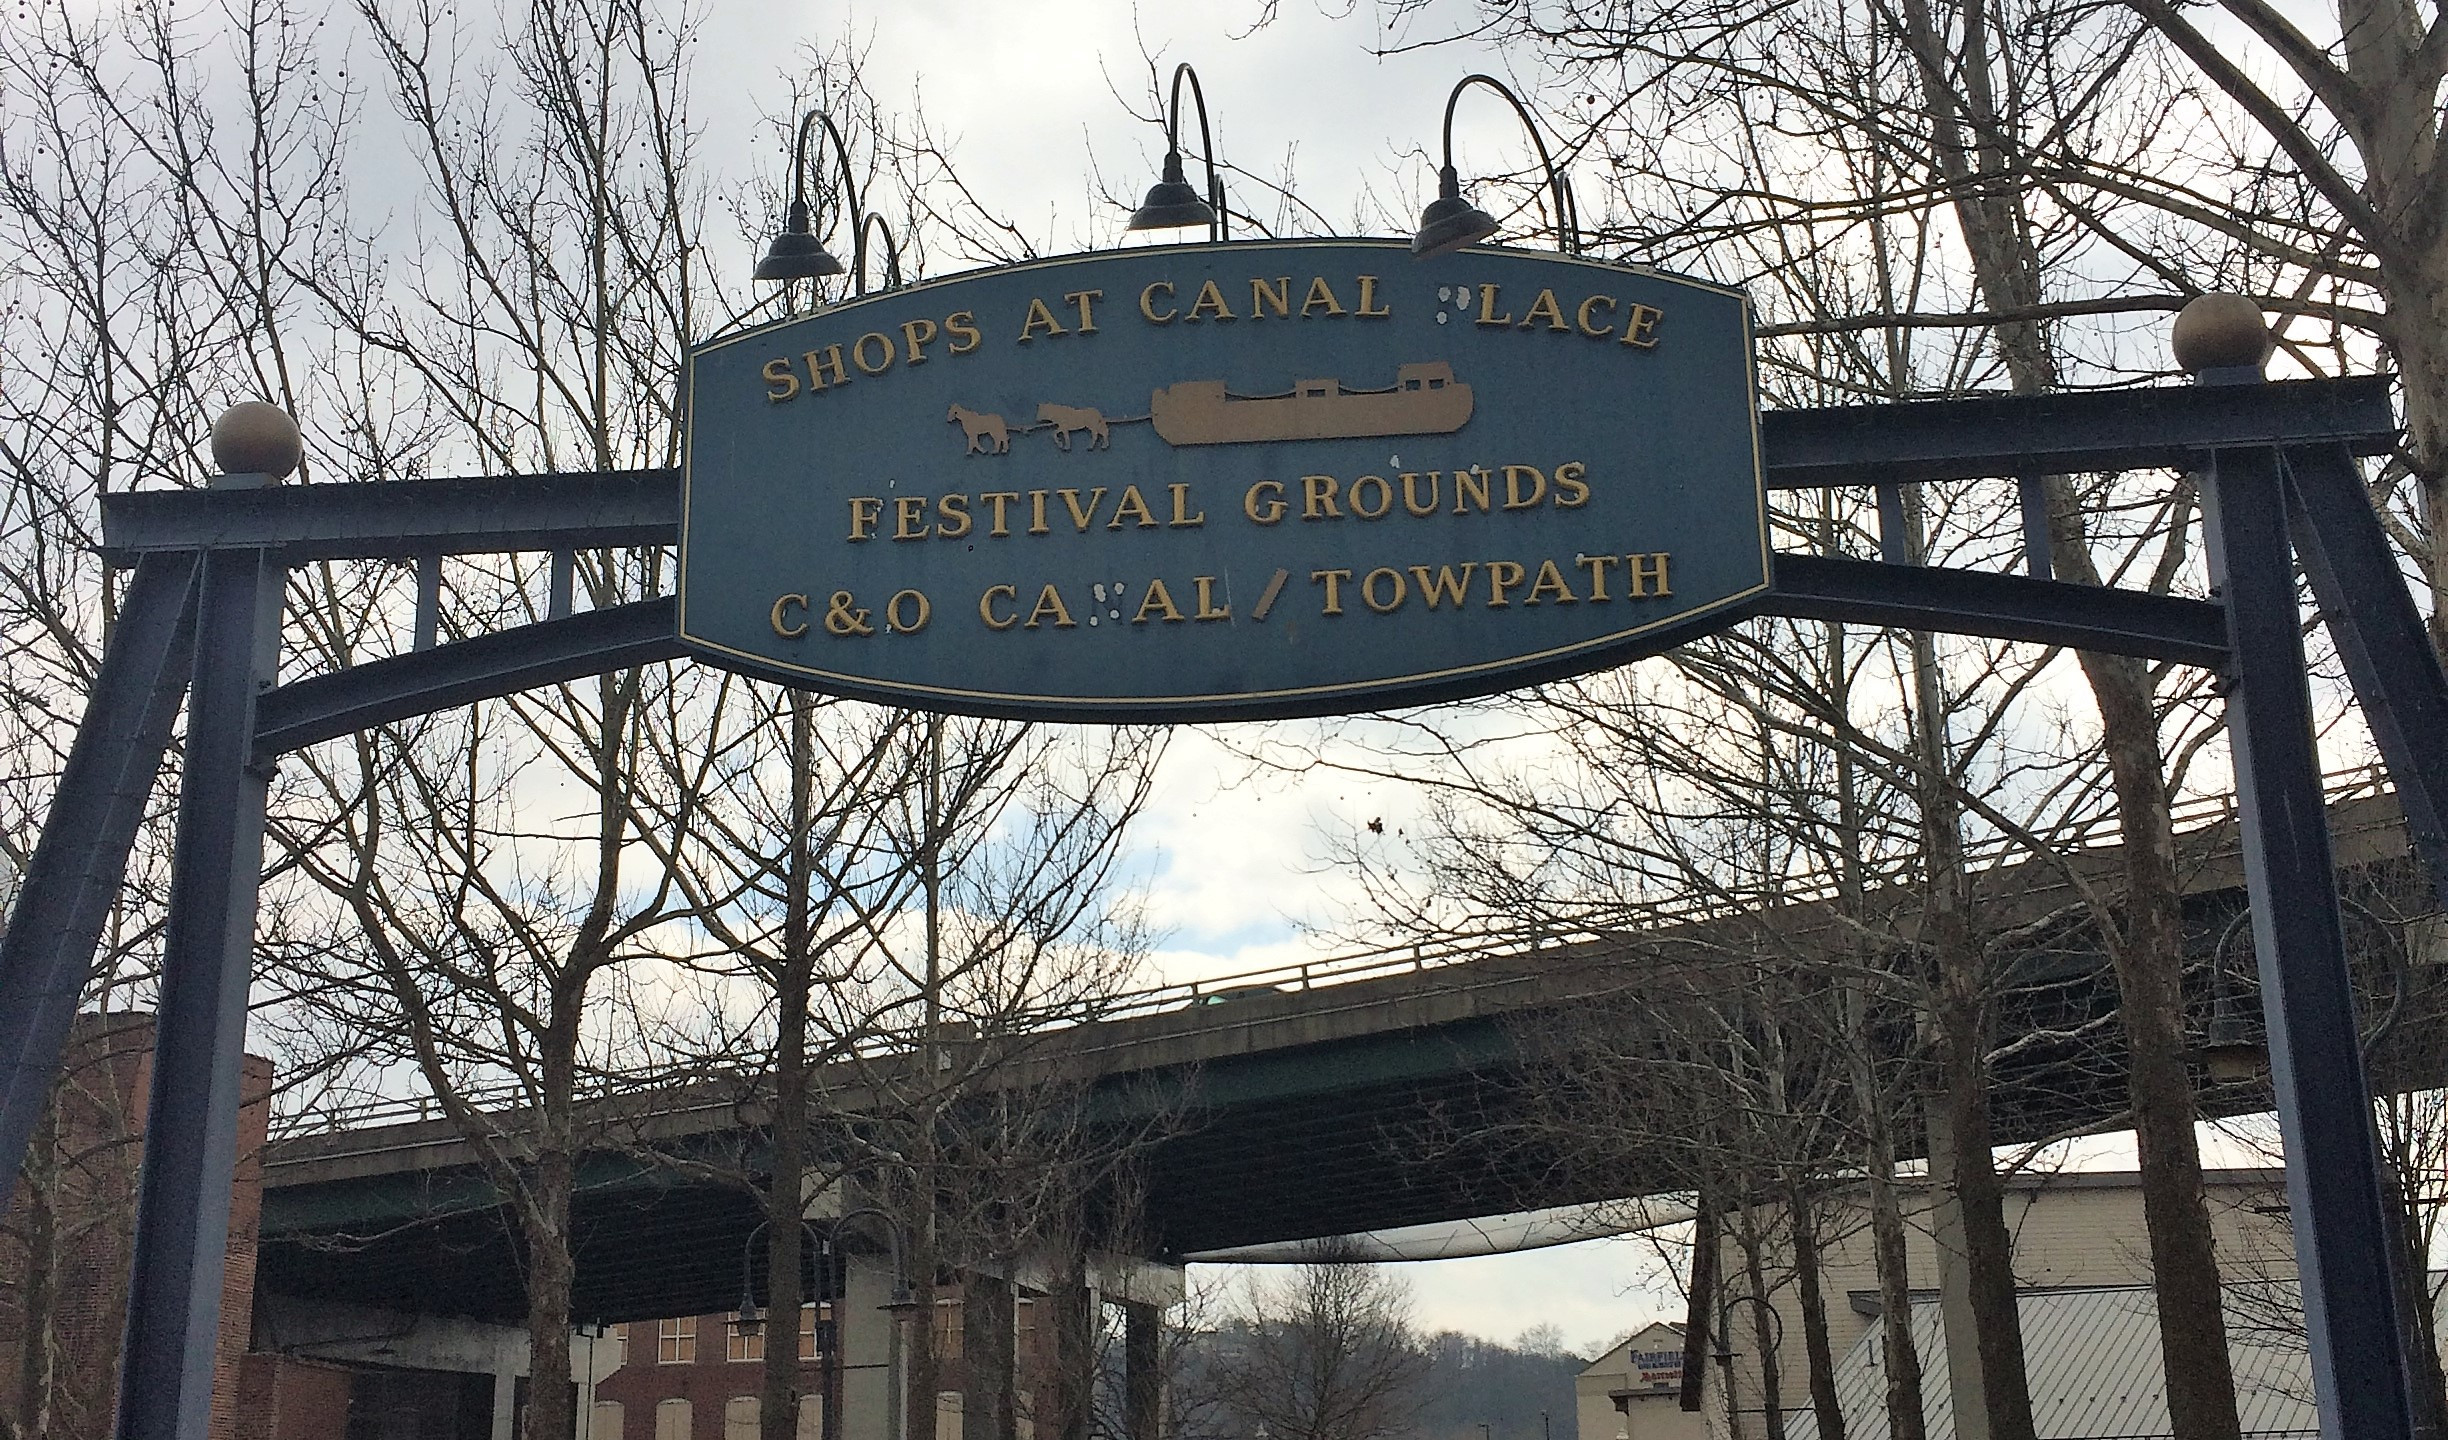 Gateway to the C&O